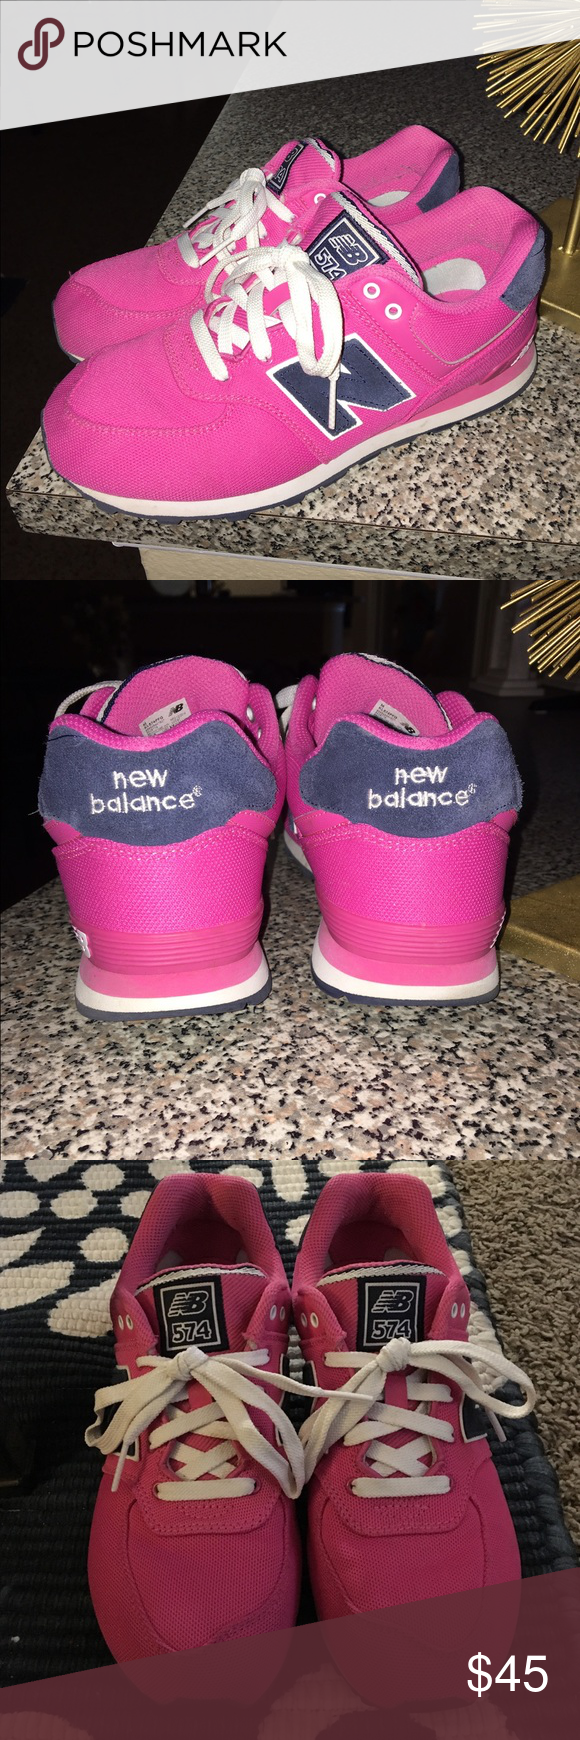 Pink new balances 574 *REDUCED SHIPPING FOR 1 HR* Excellent condition!! Looks like brand new! Worn a few times size 7.5 women's pink and navy blue New Balance Shoes Sneakers